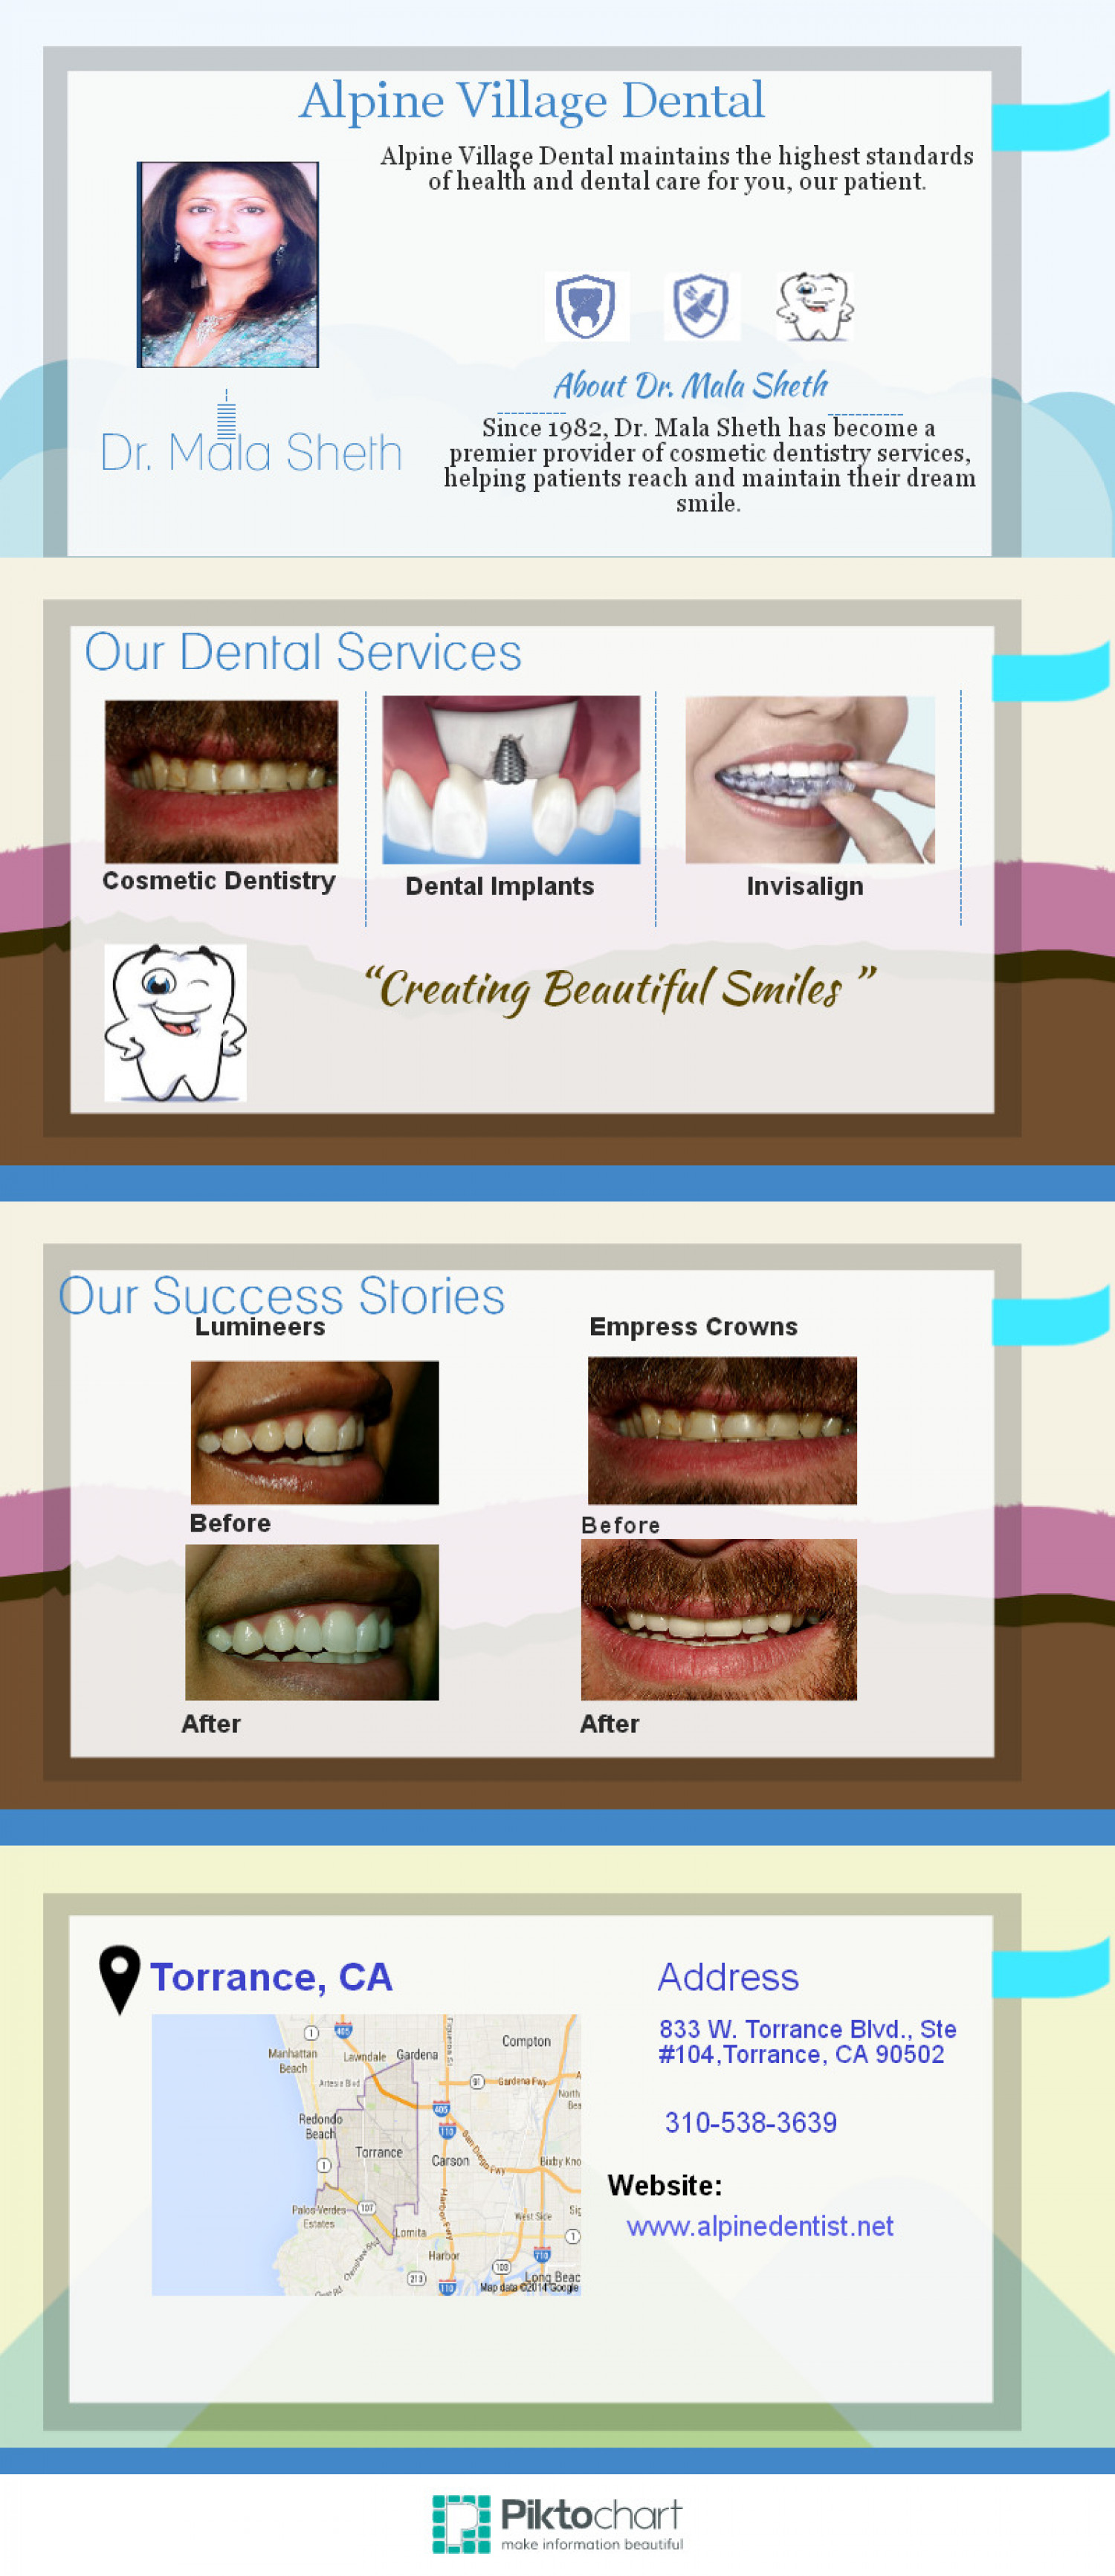 Alpine Village Dental Infographic